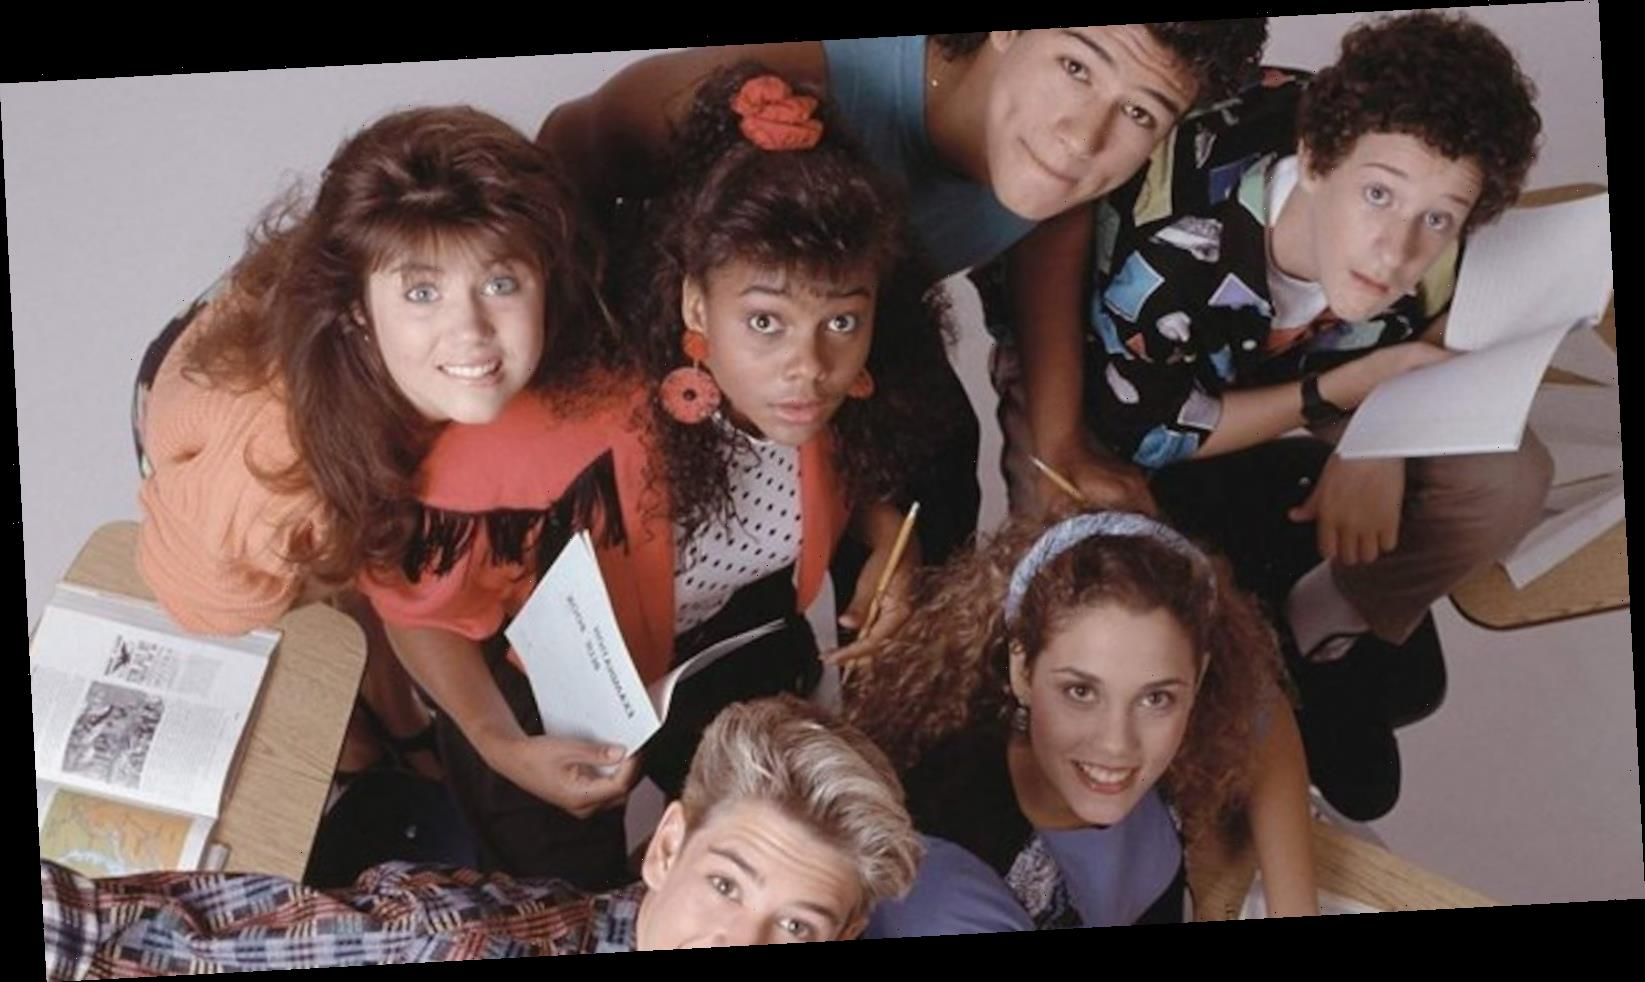 The Saved by the Bell cast member you won't see in the reboot